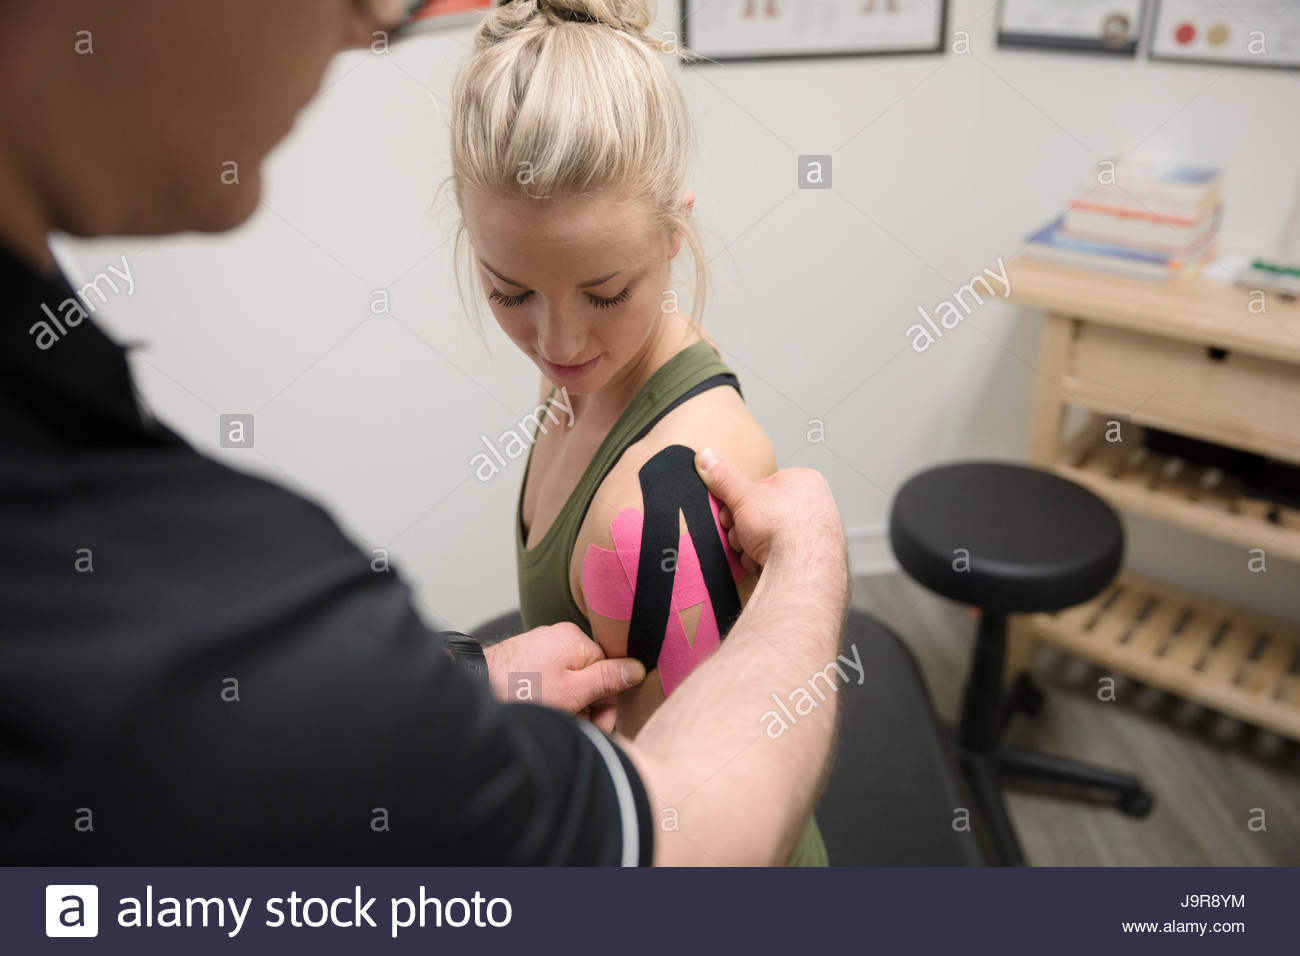 Male physiotherapist applying elastic therapeutic tape to shoulder of female client in office - Stock Image